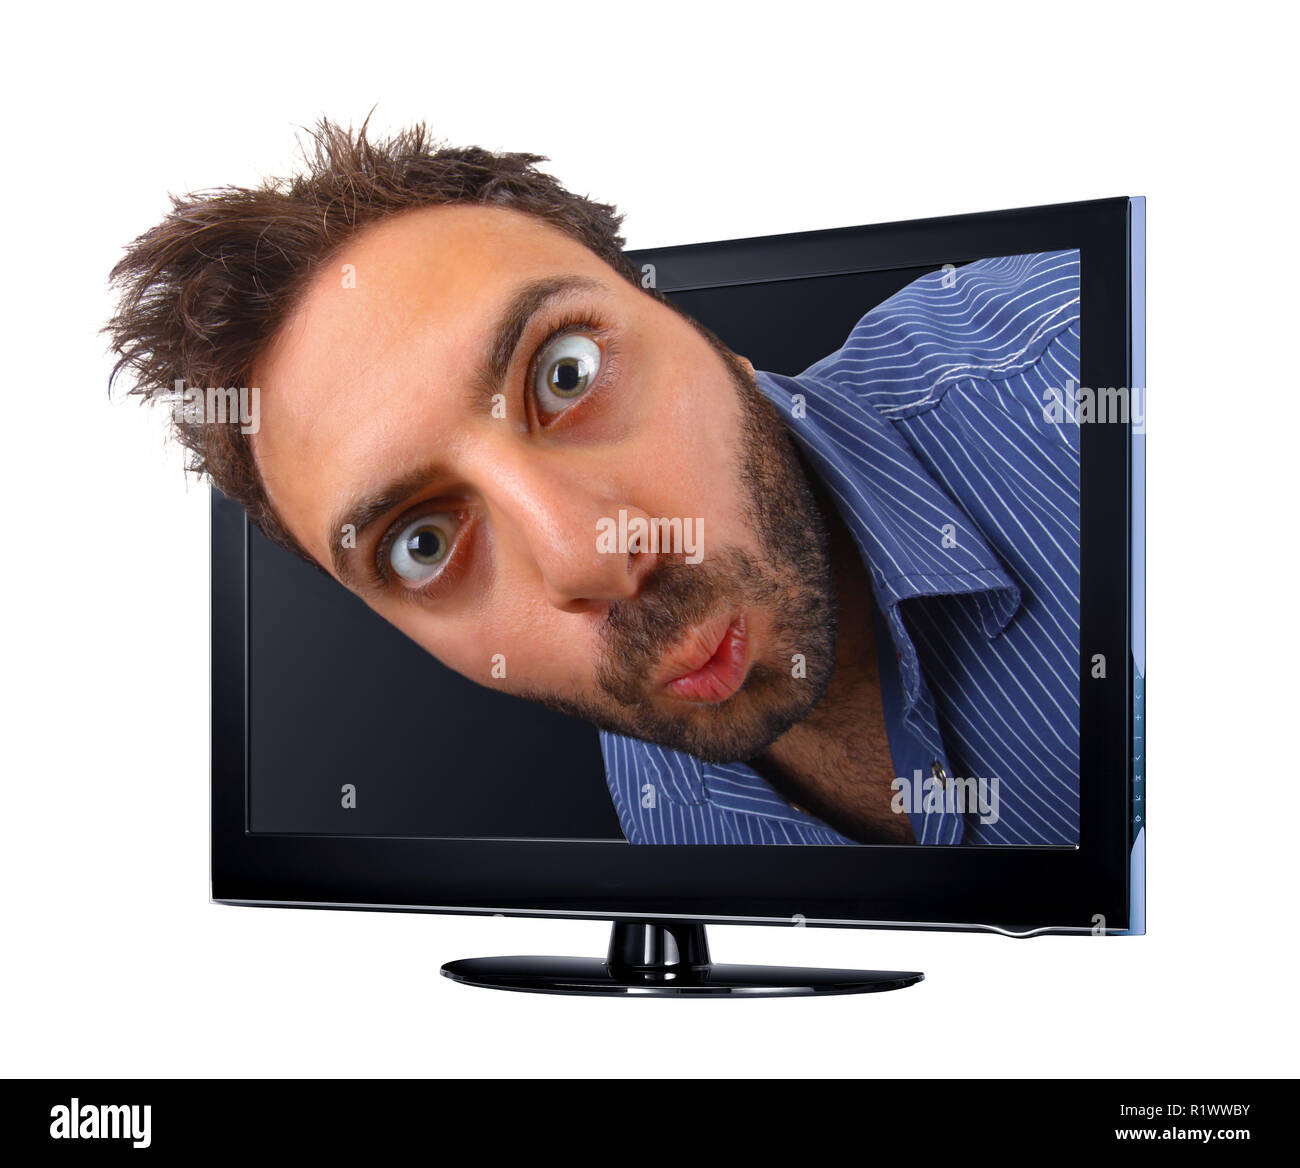 Wow Effect Stock Photos & Wow Effect Stock Images - Alamy